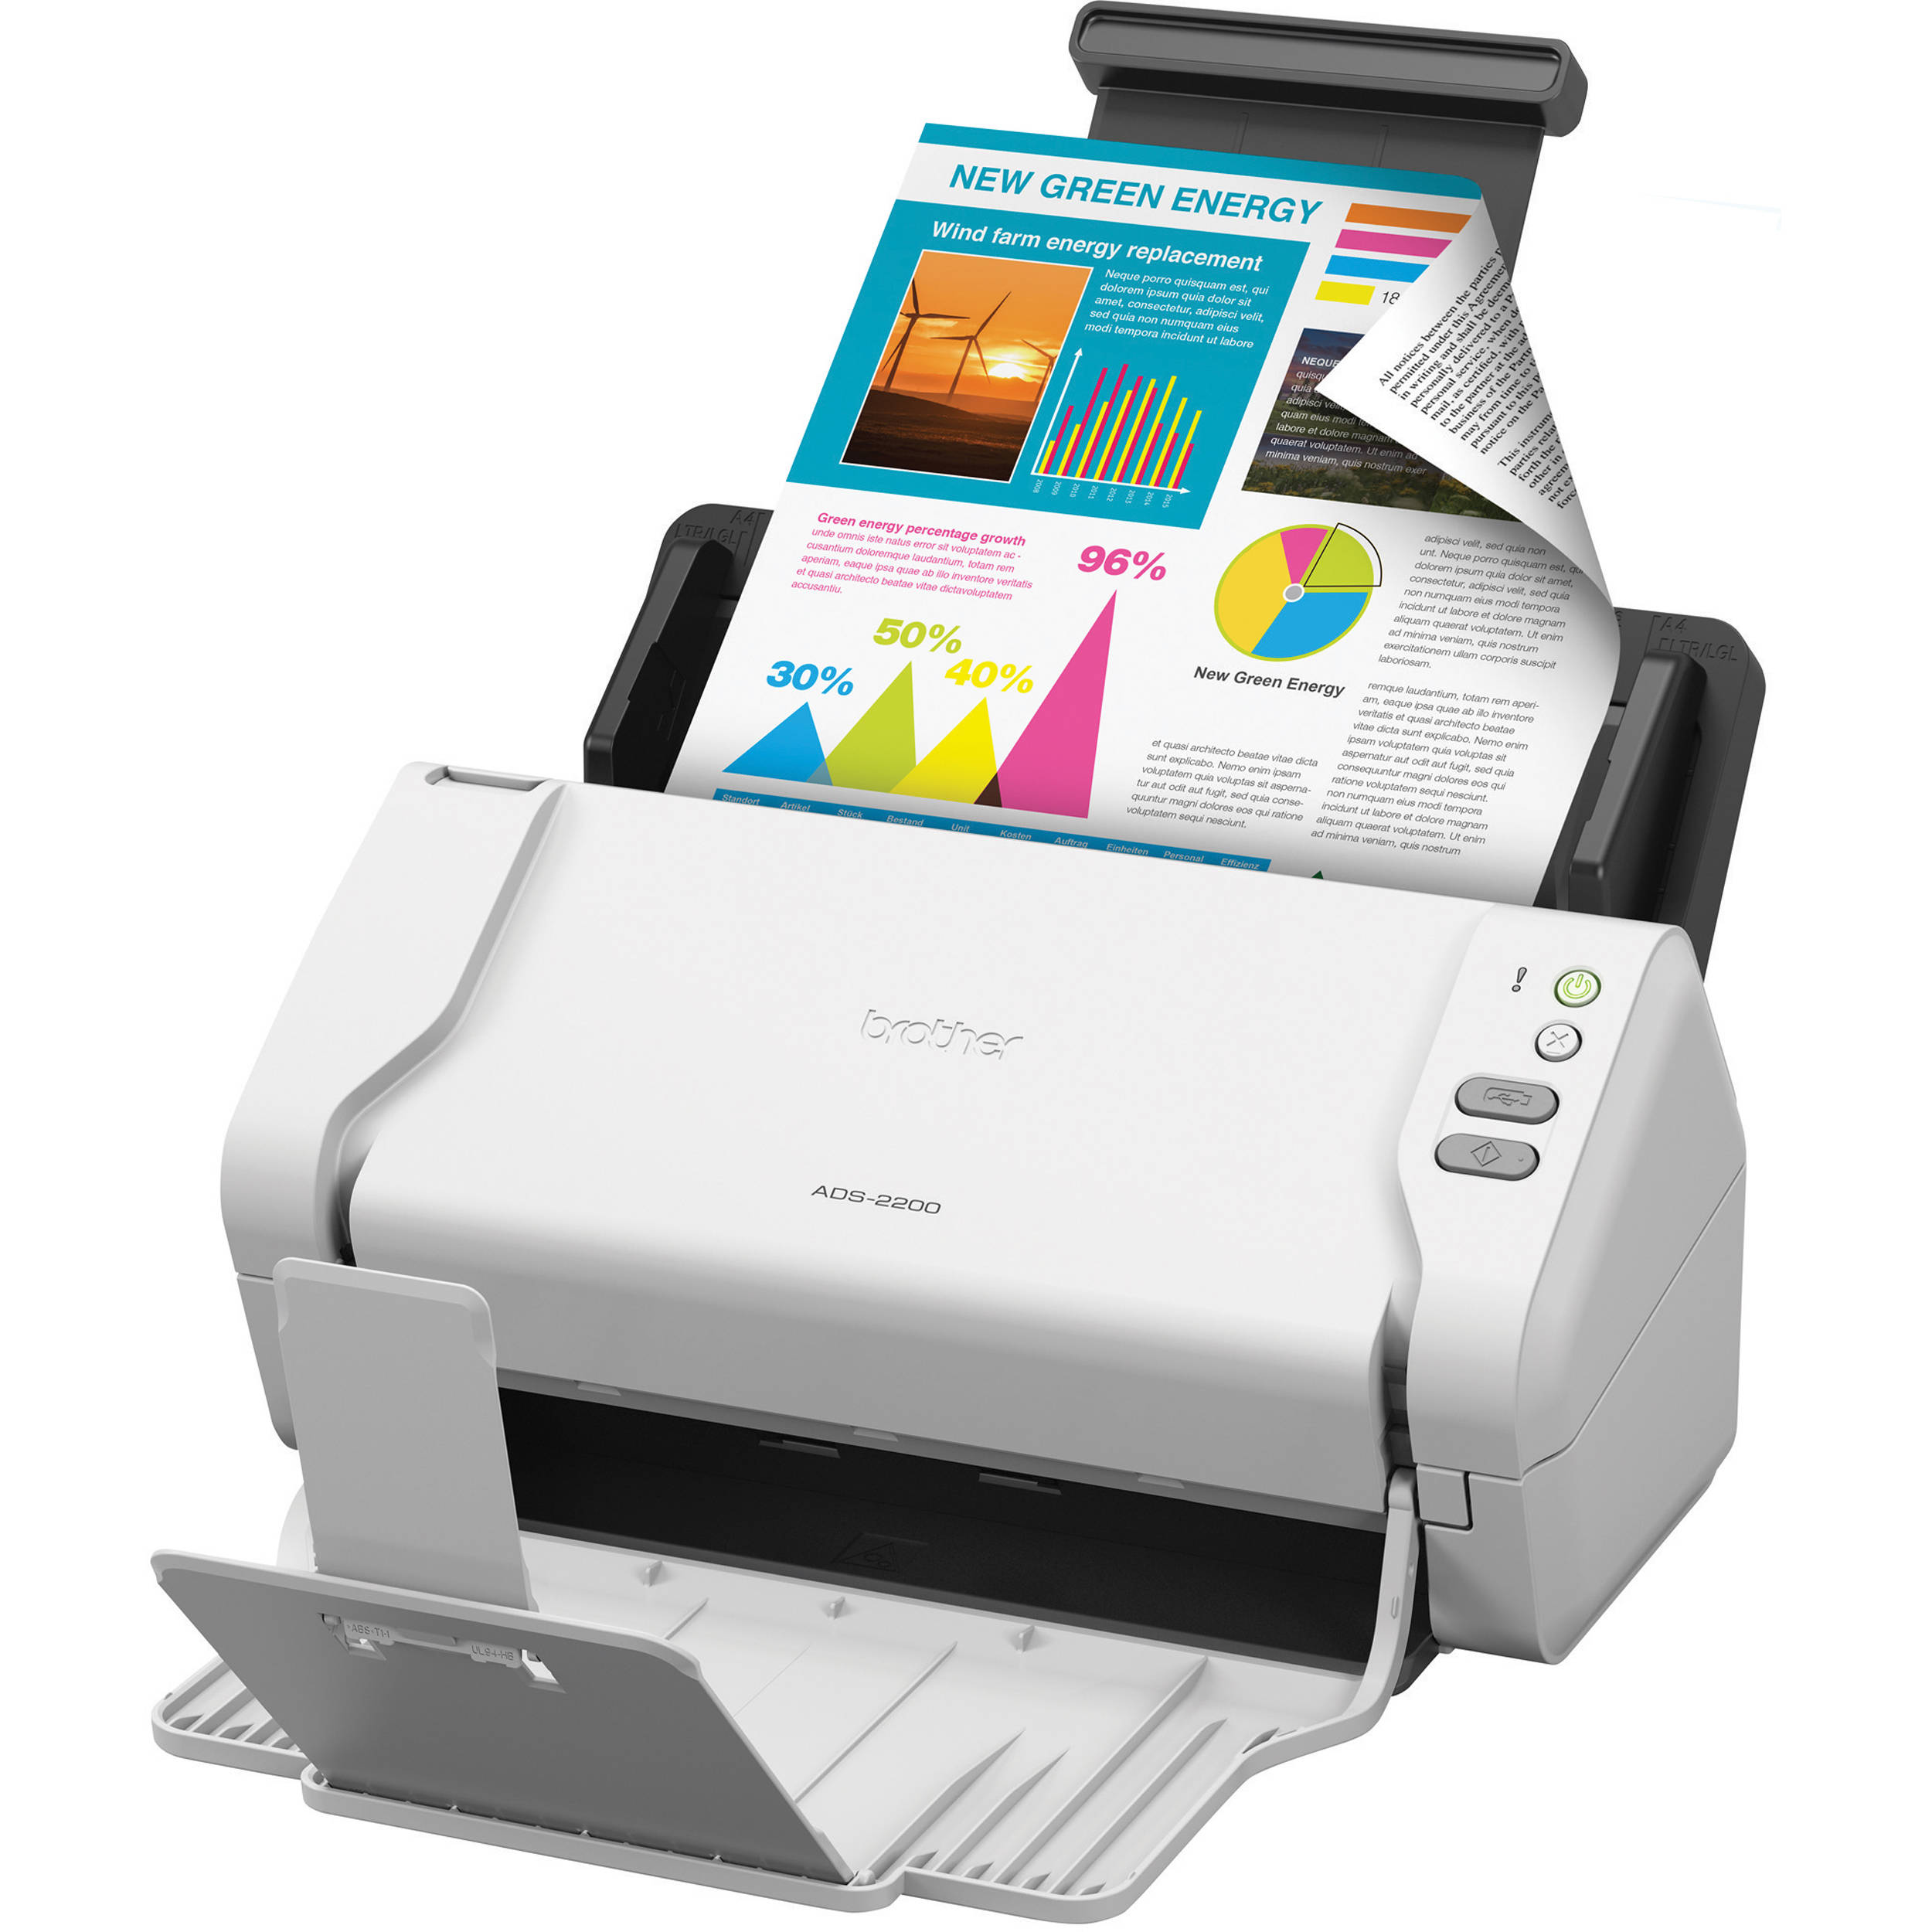 brother ads 2000 high speed document scanner